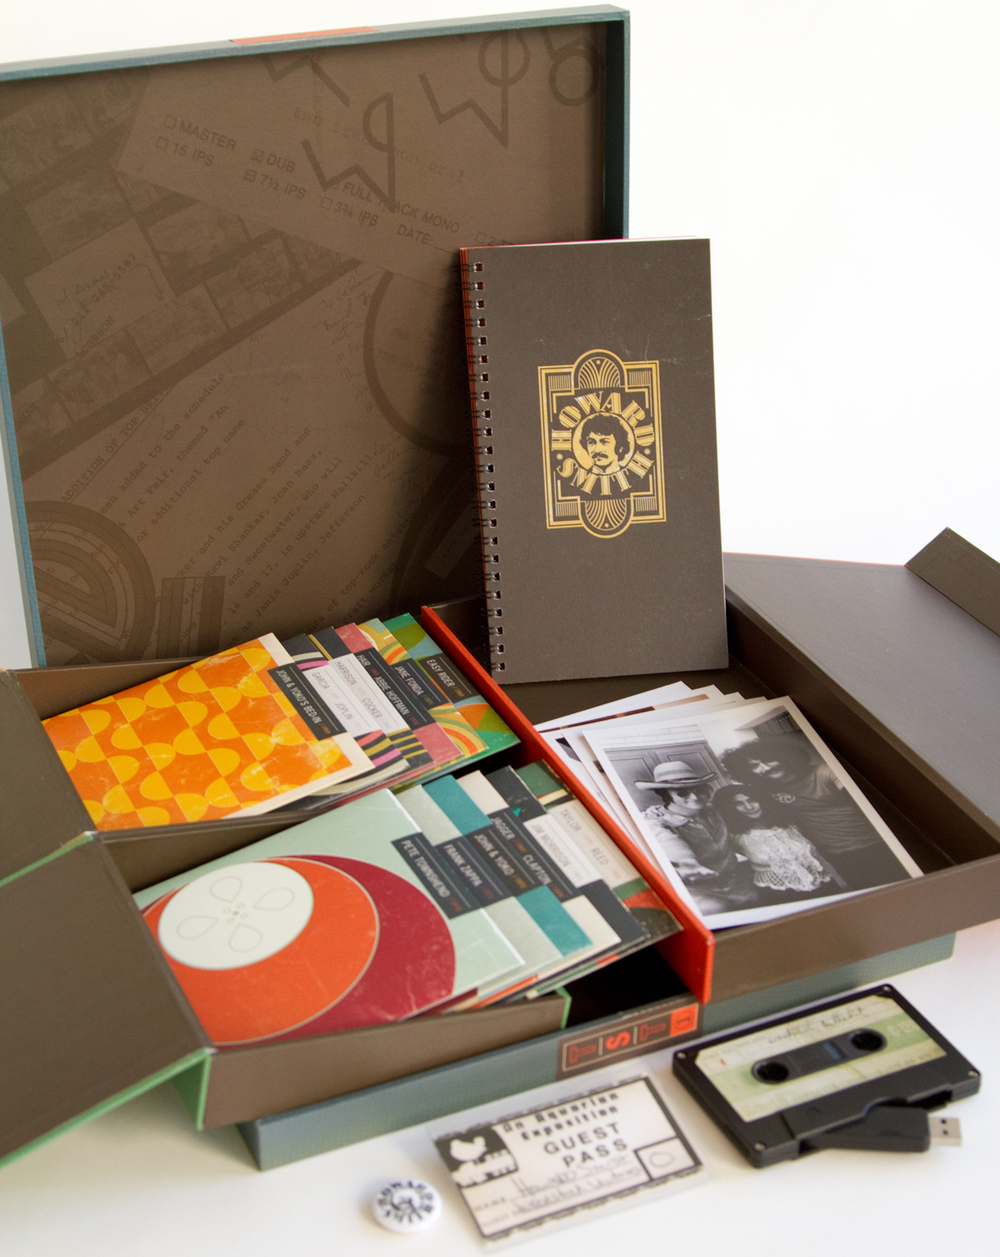 The Limited Edition Box Set